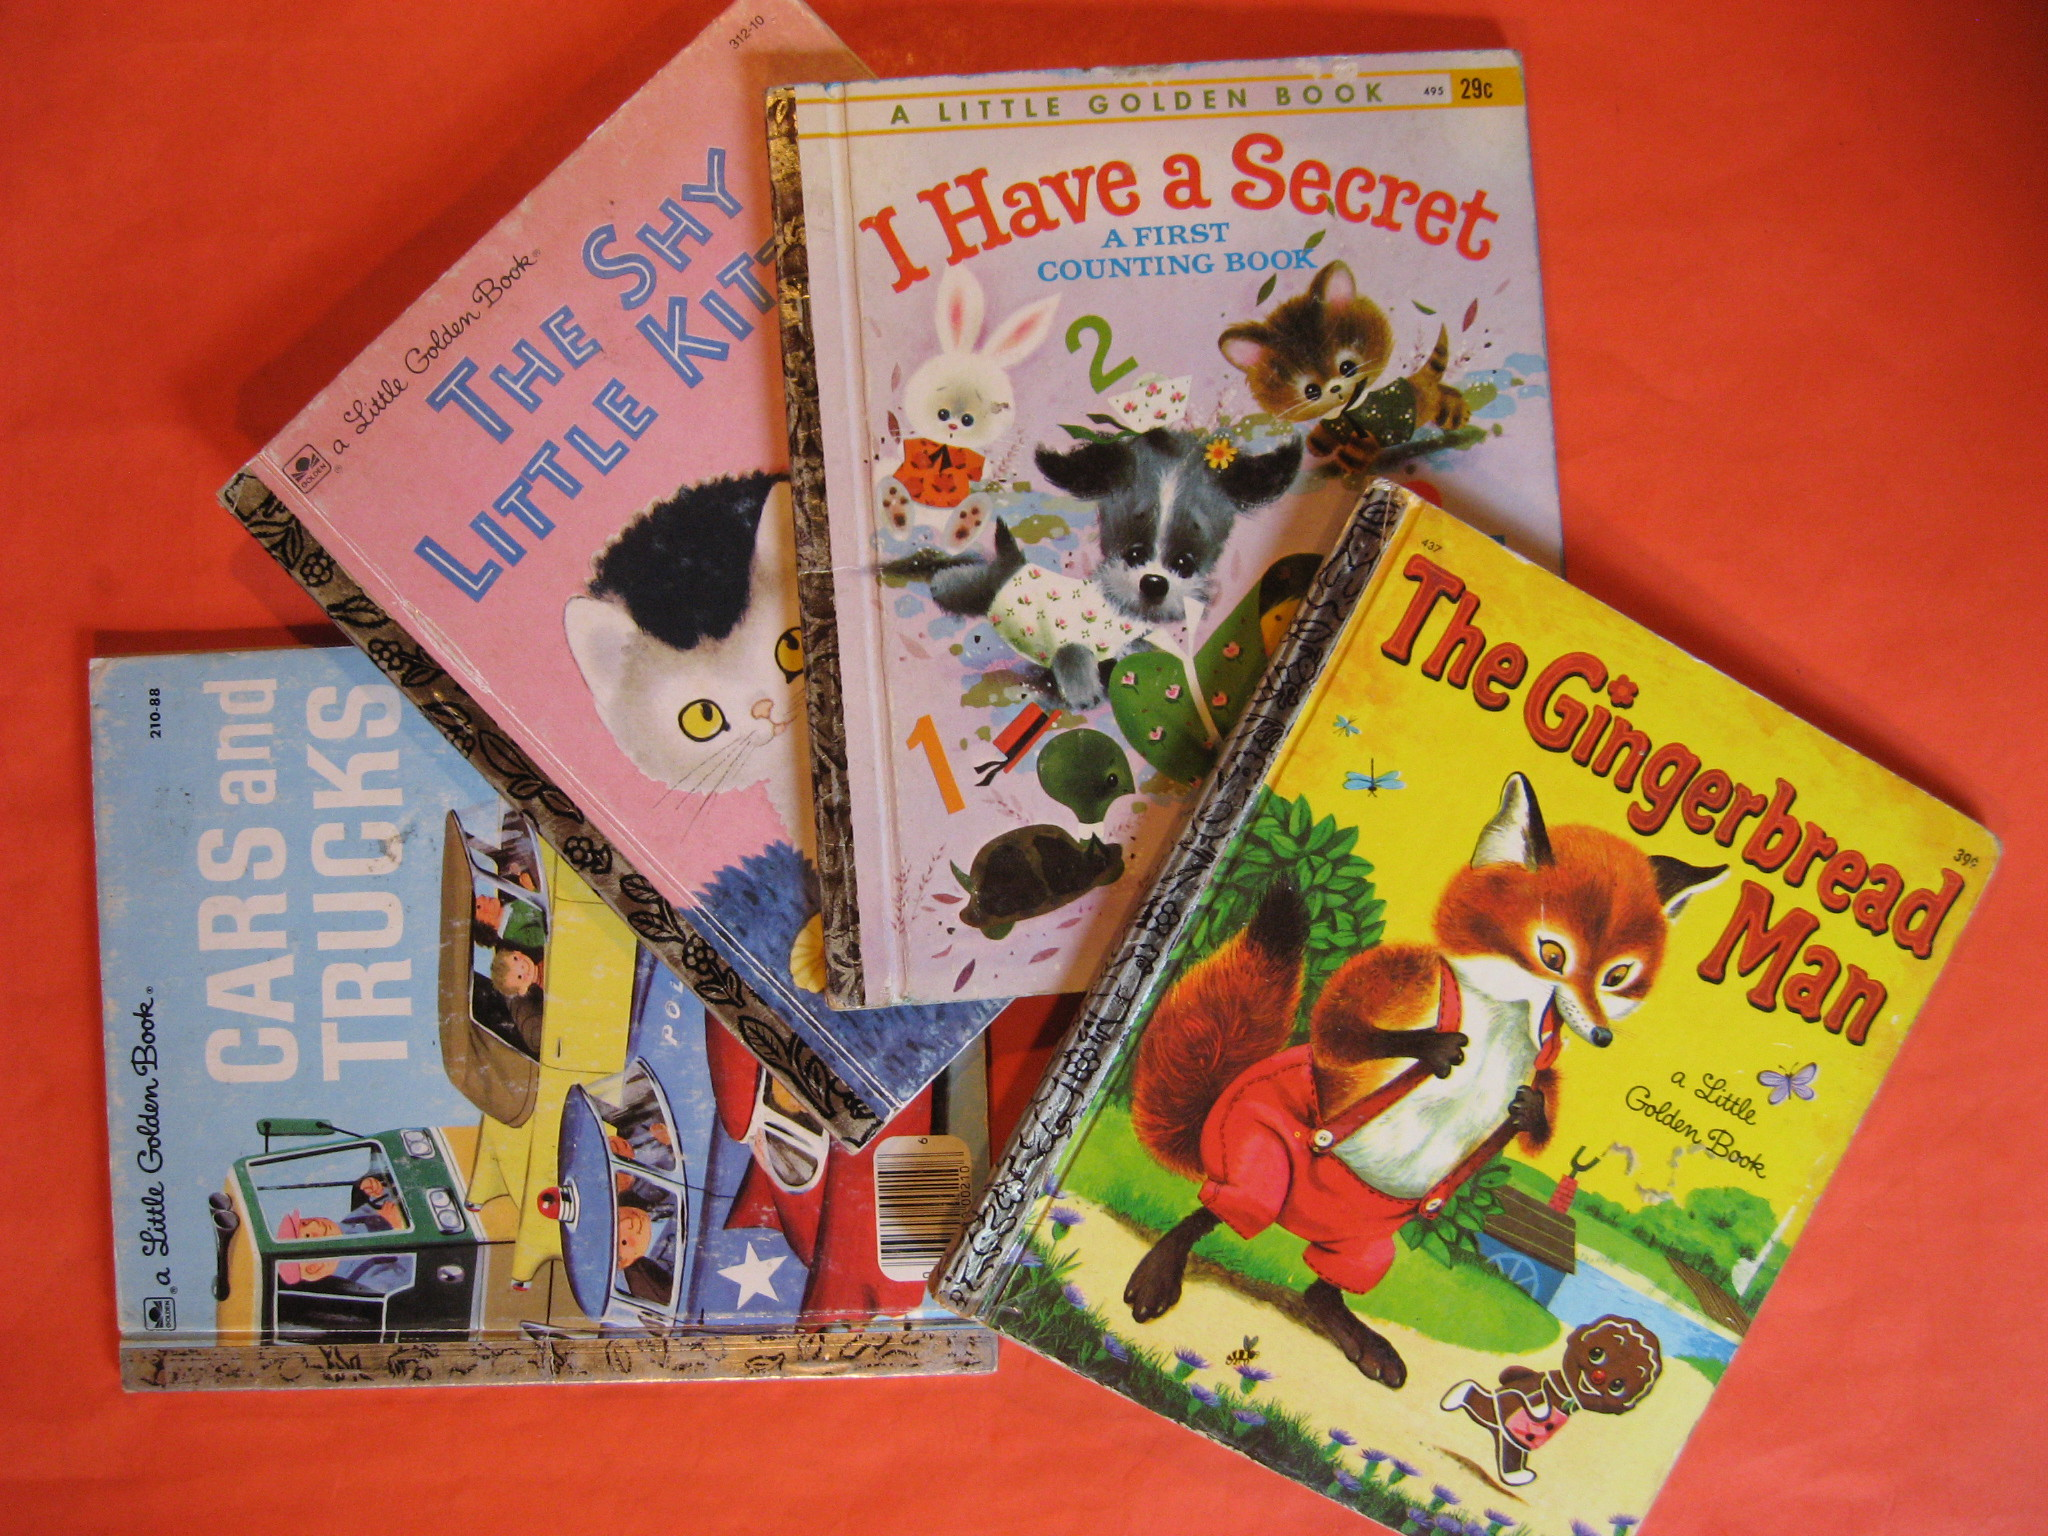 Four Little Golden Books